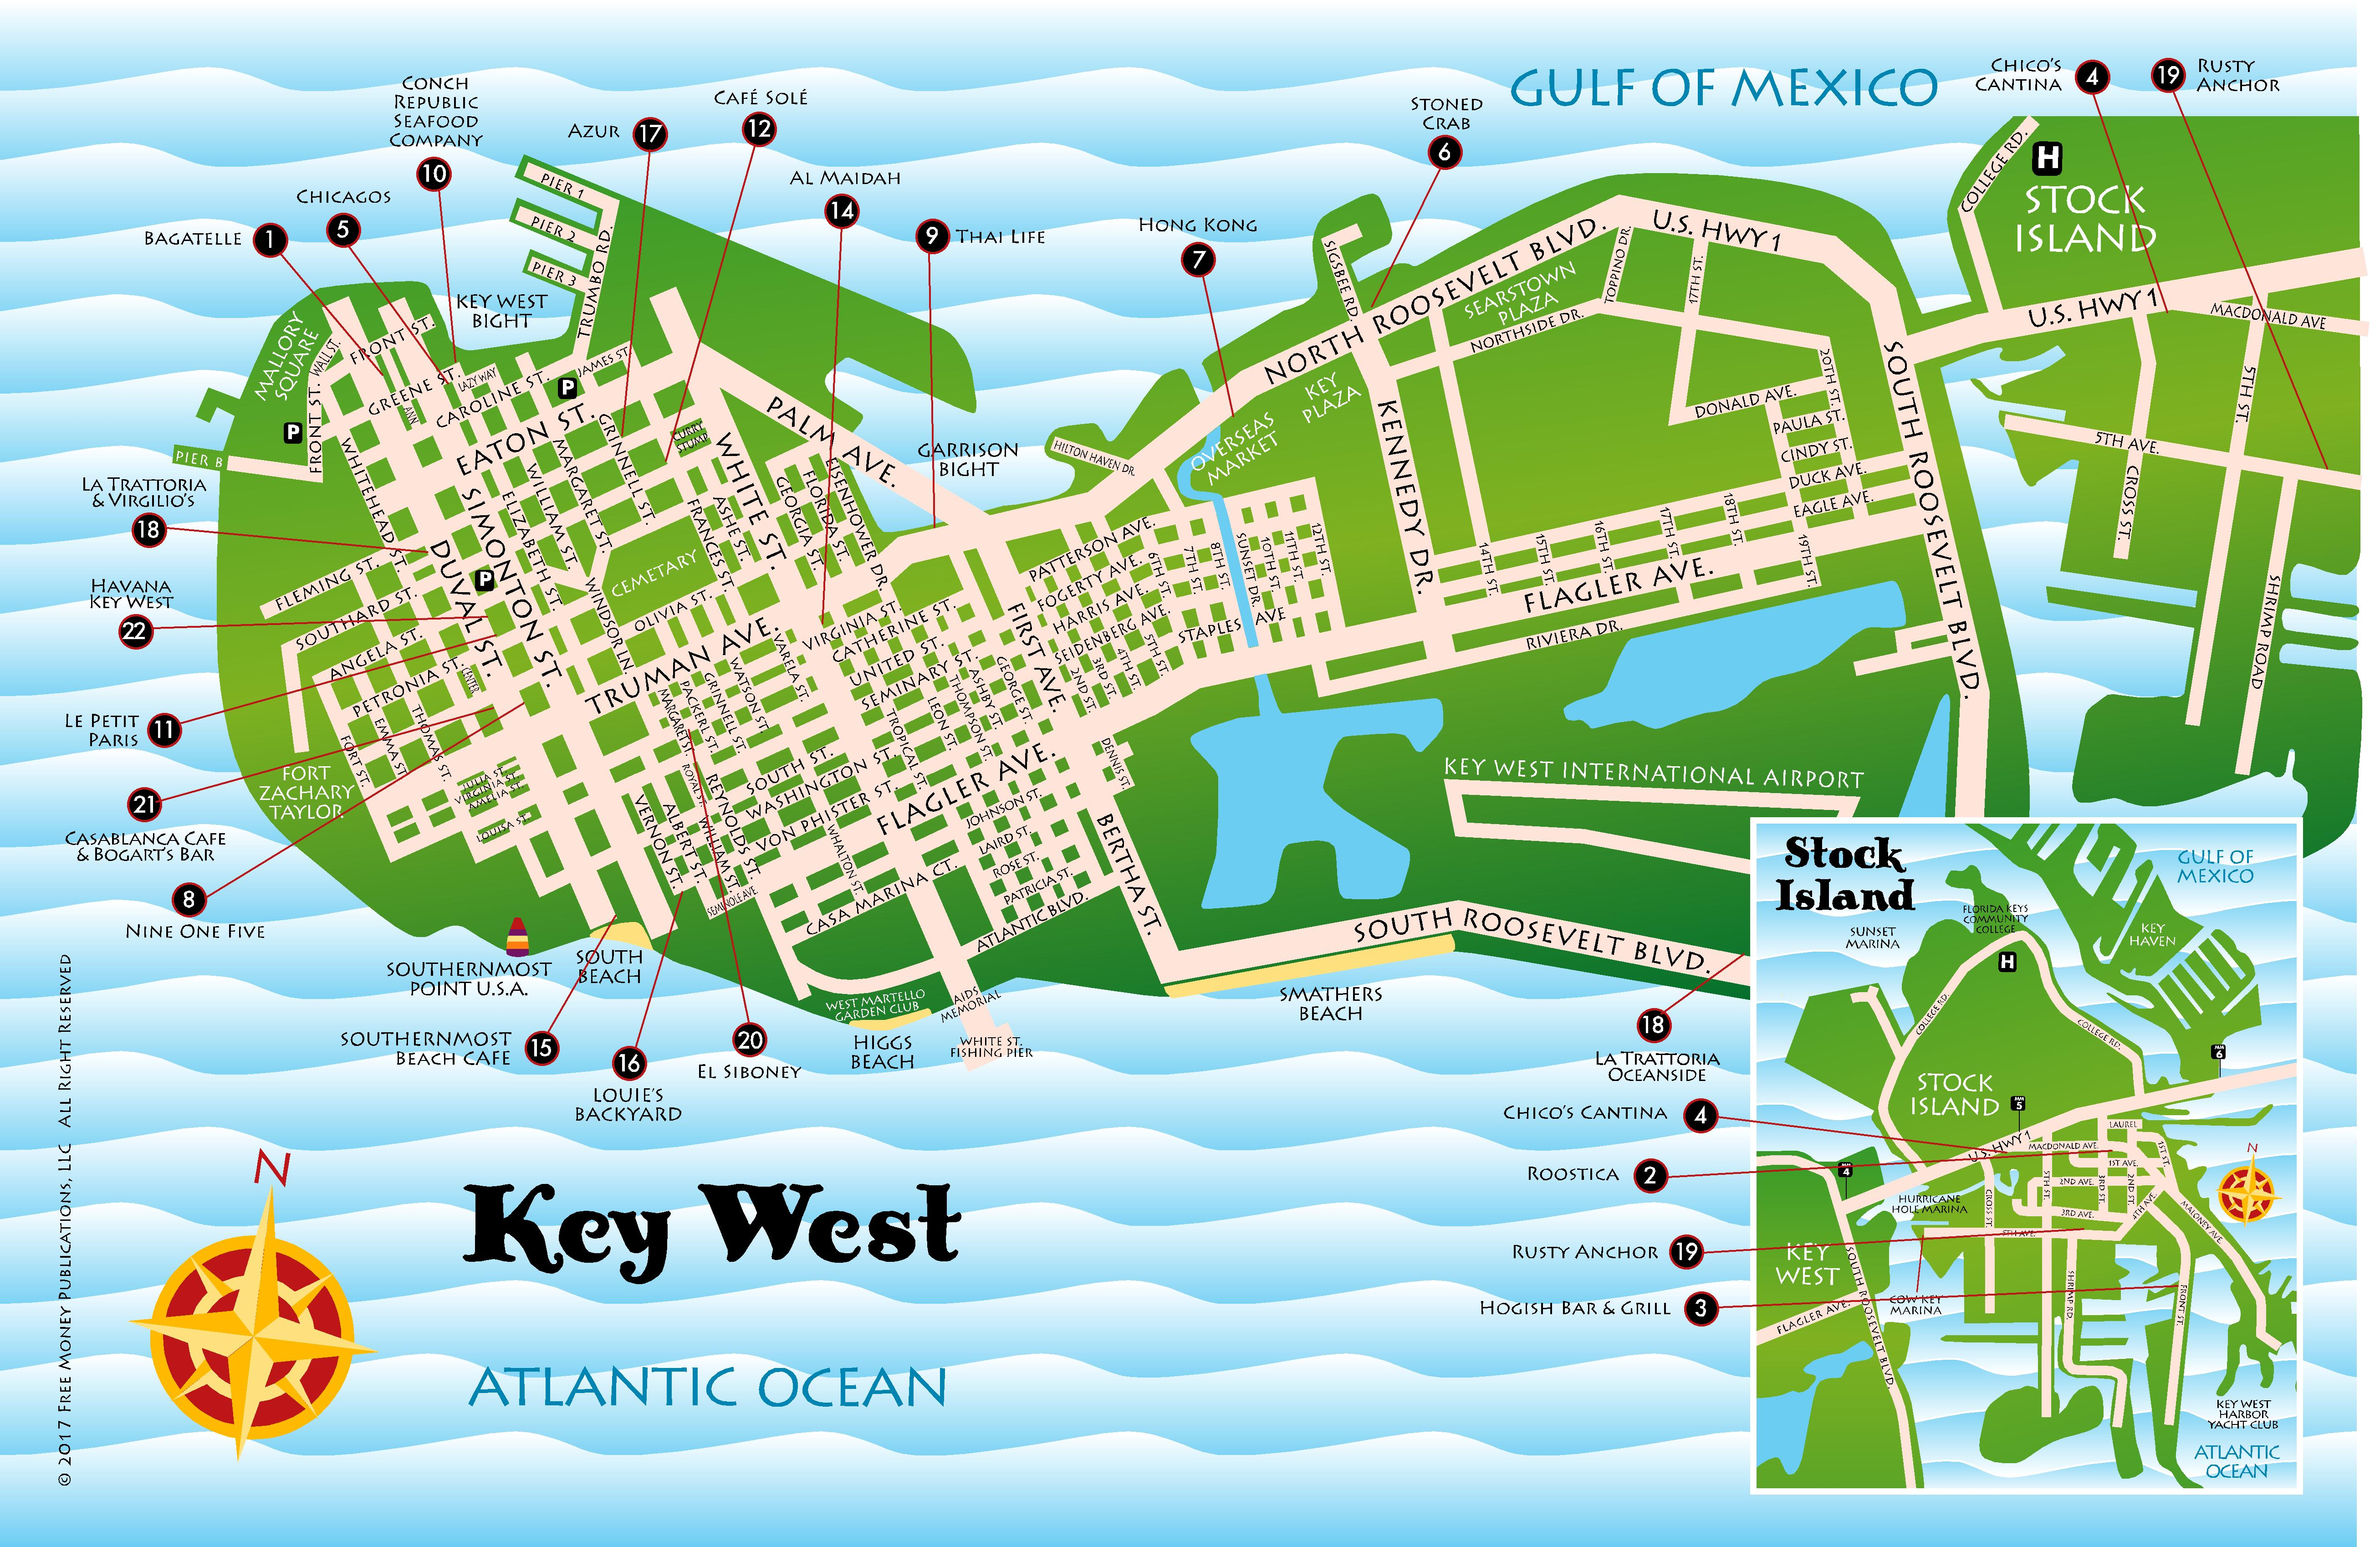 a study of the island of key west This report summarizes the major findings of the west-central florida coastal studies project which was funded by the united states geological survey this project was a co-operative five-year venture designed to conduct a geologic framework study of a barrier-island coastline and its adjacent.